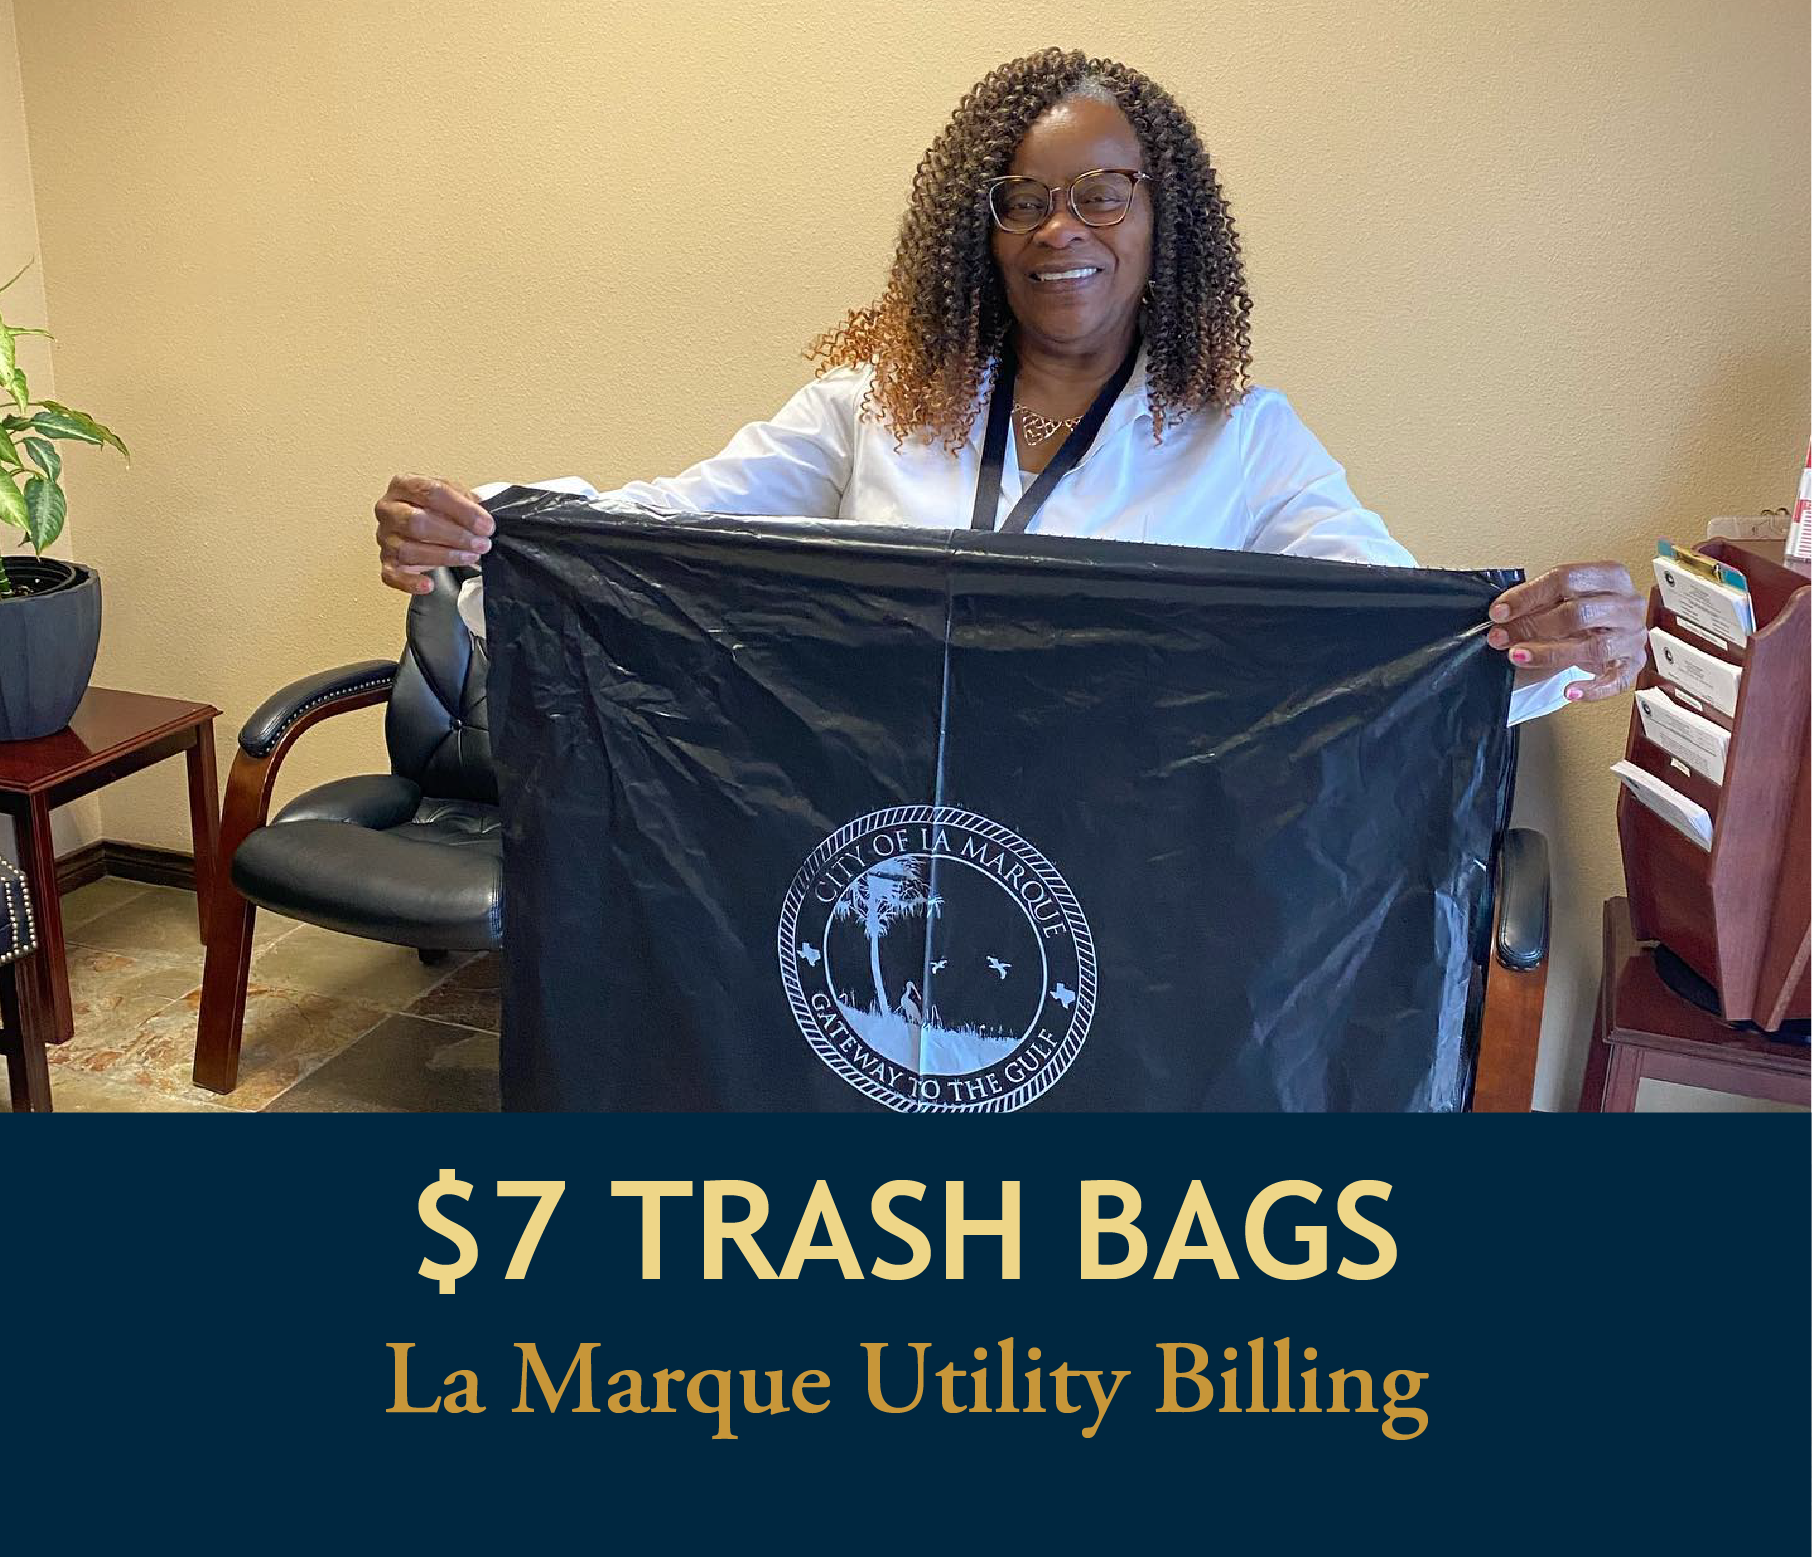 photo of City of La Marque Trash Bags